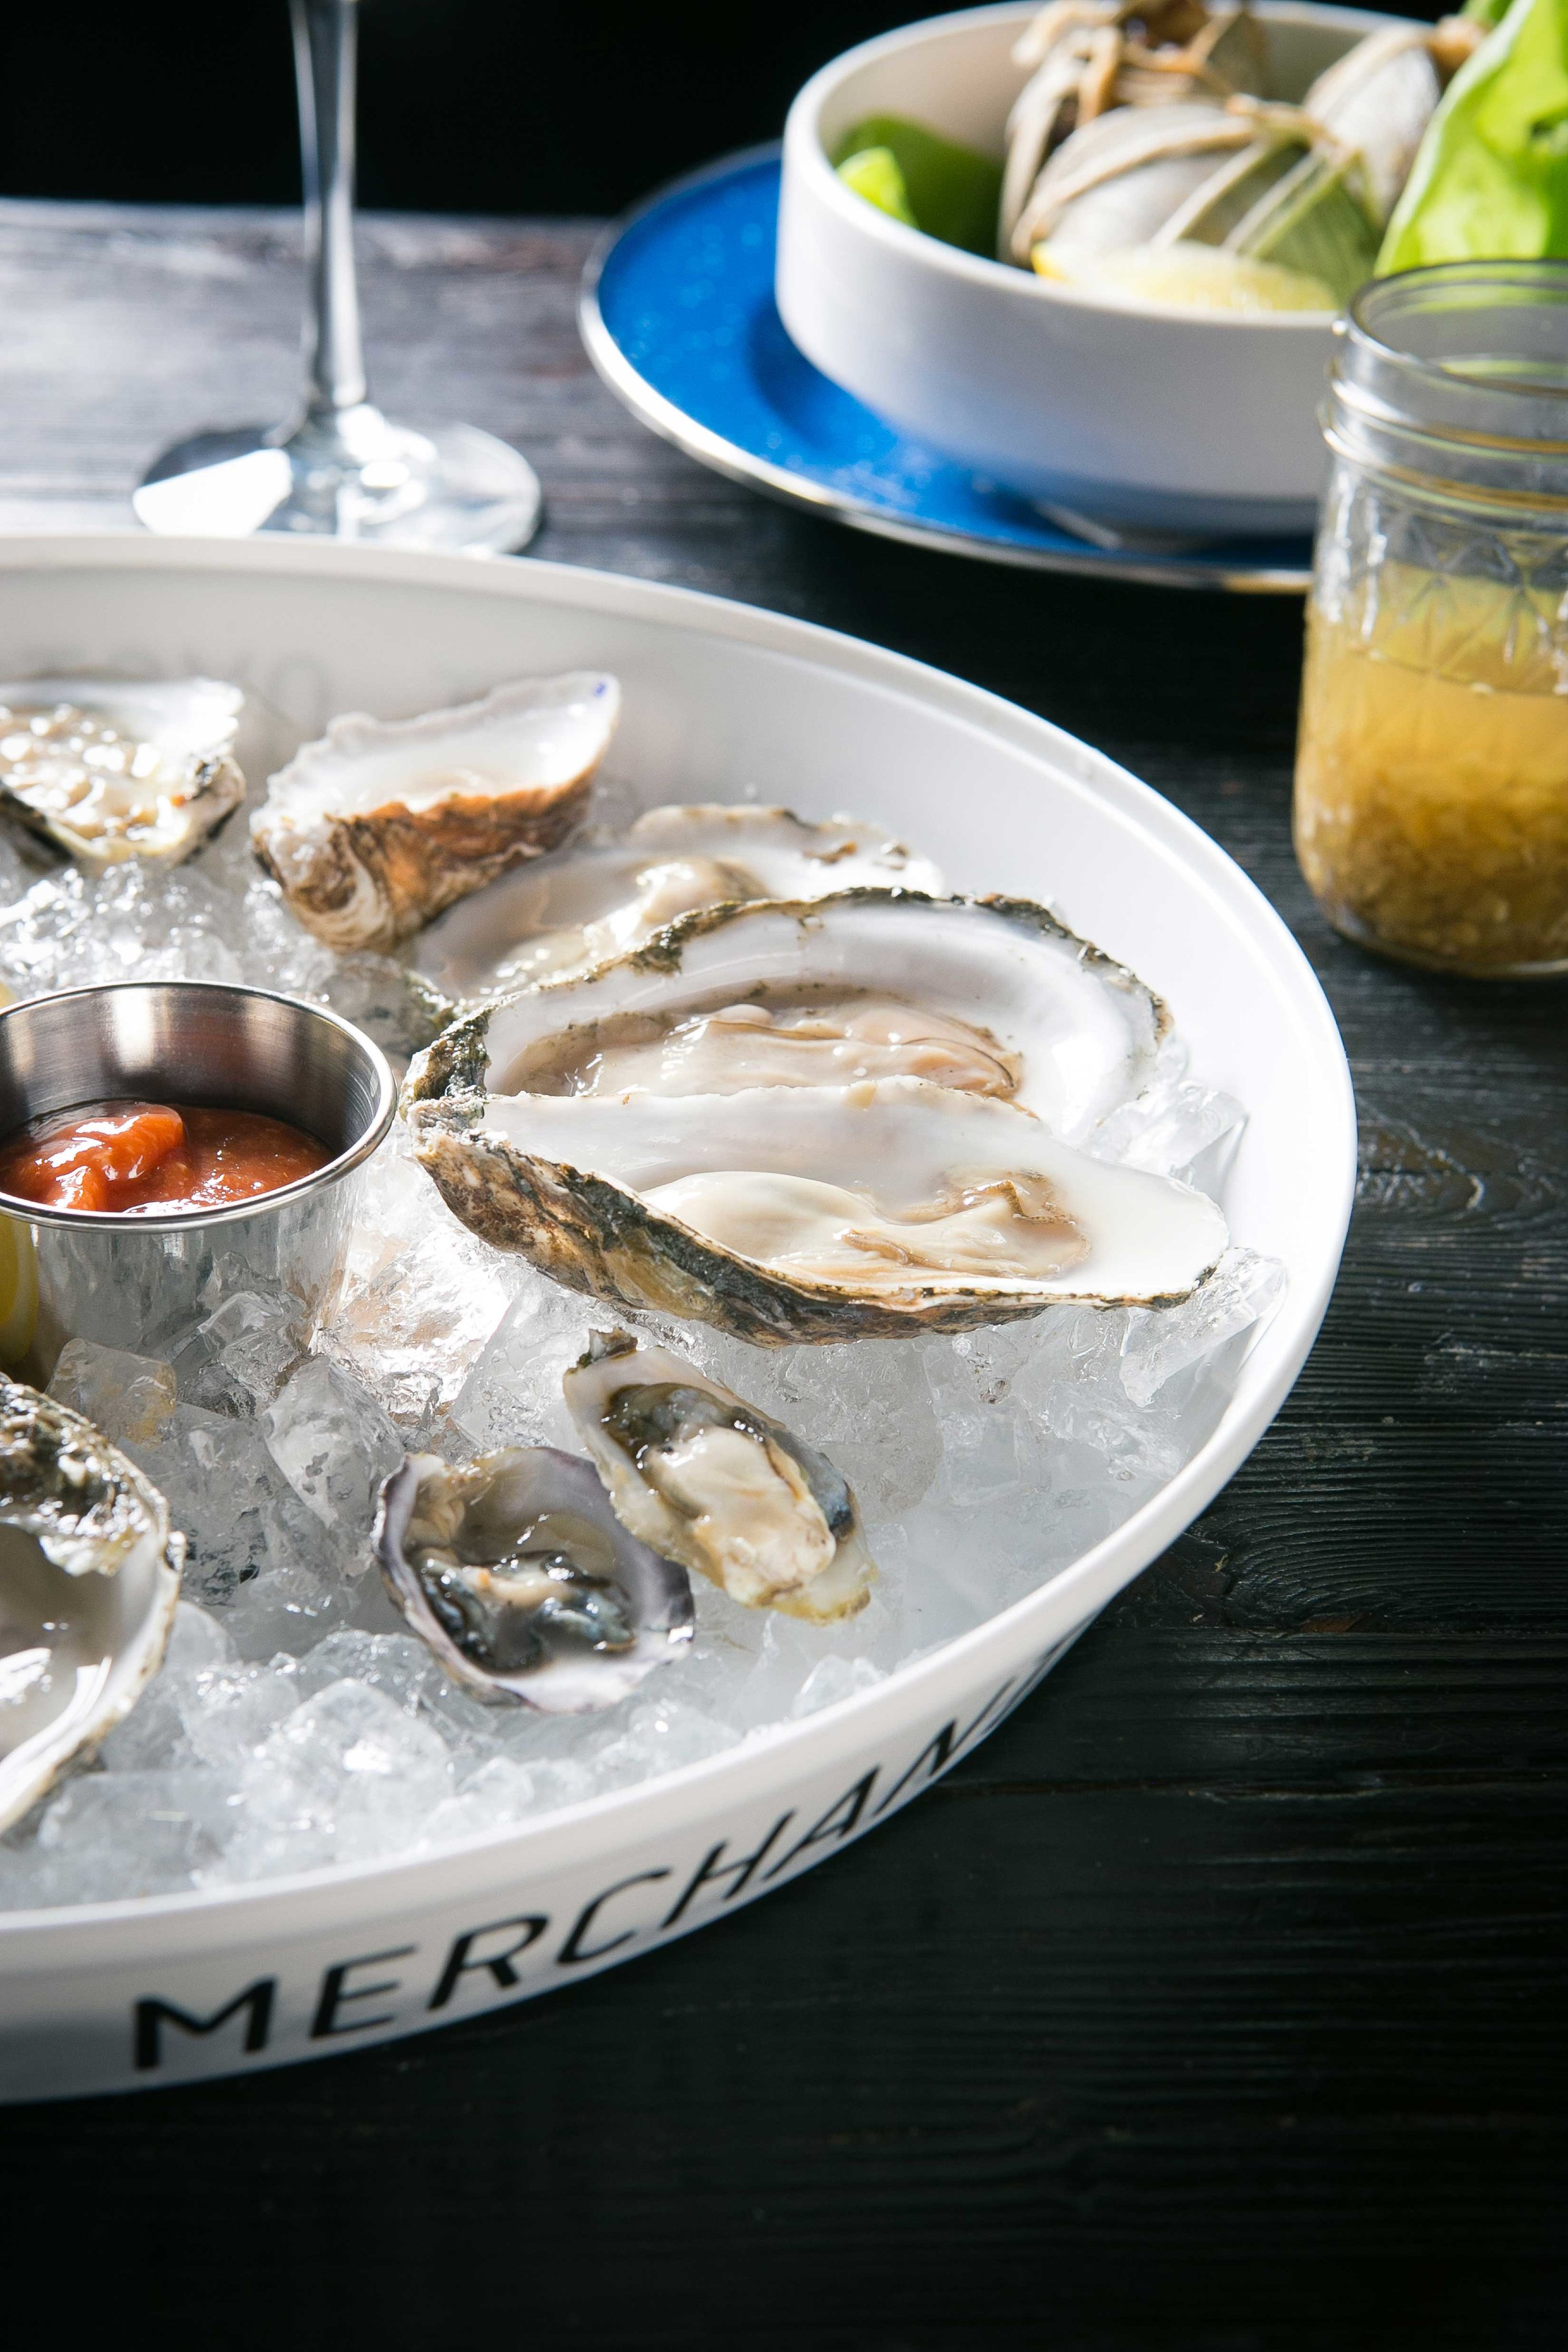 Fresh oysters and homemade cocktail sauce in Merchant tray.